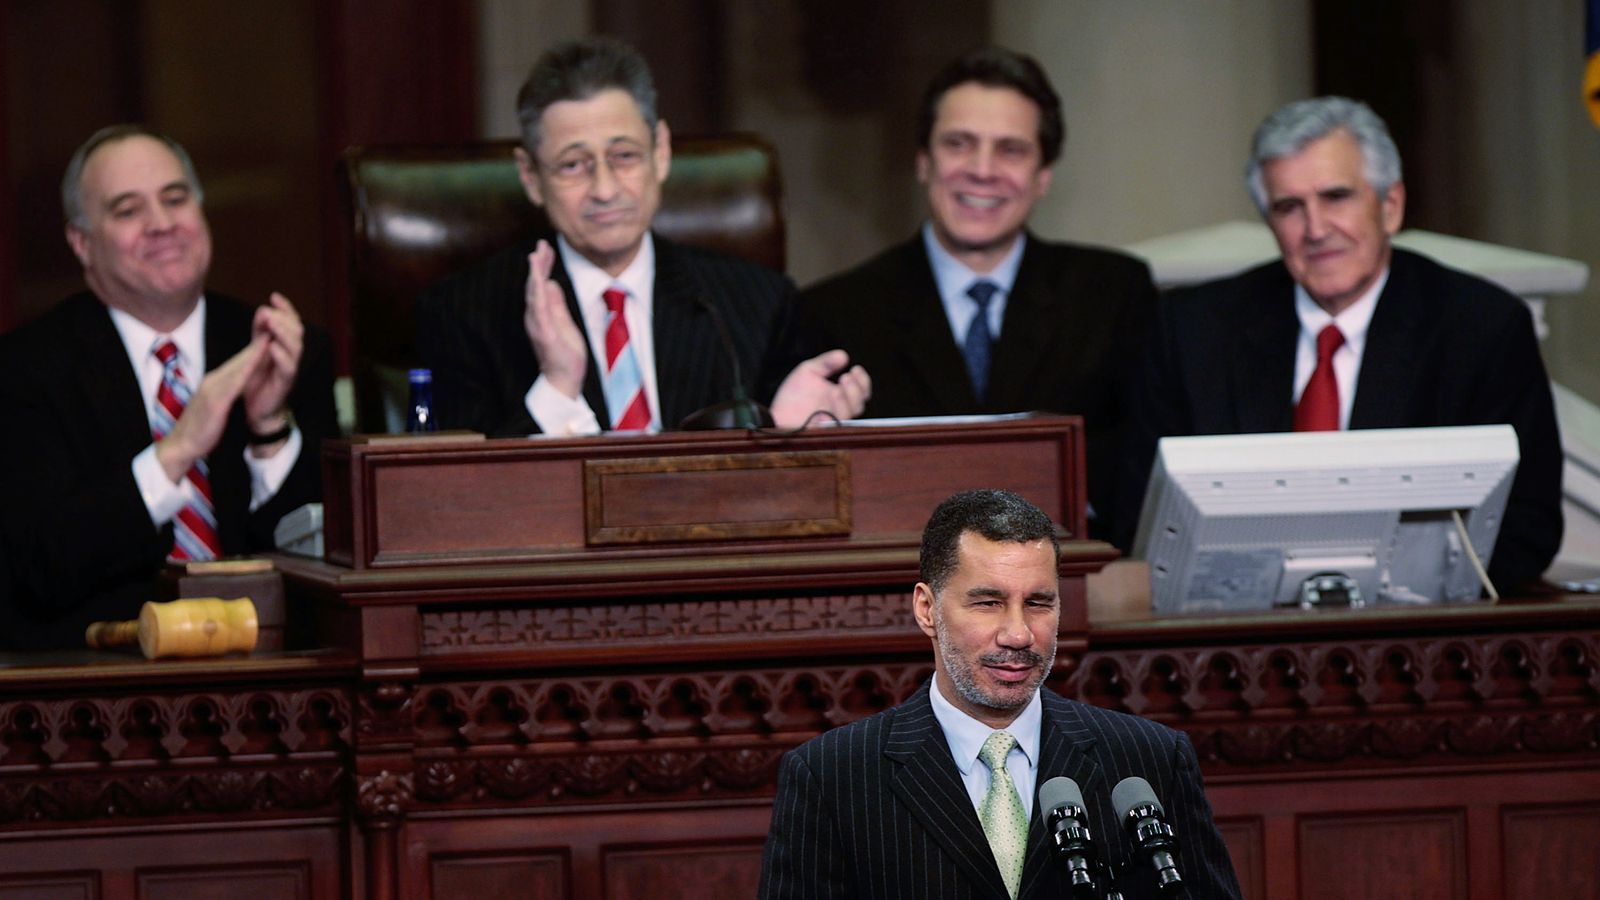 NY pol arrested, biggest obstacle to UFC in state